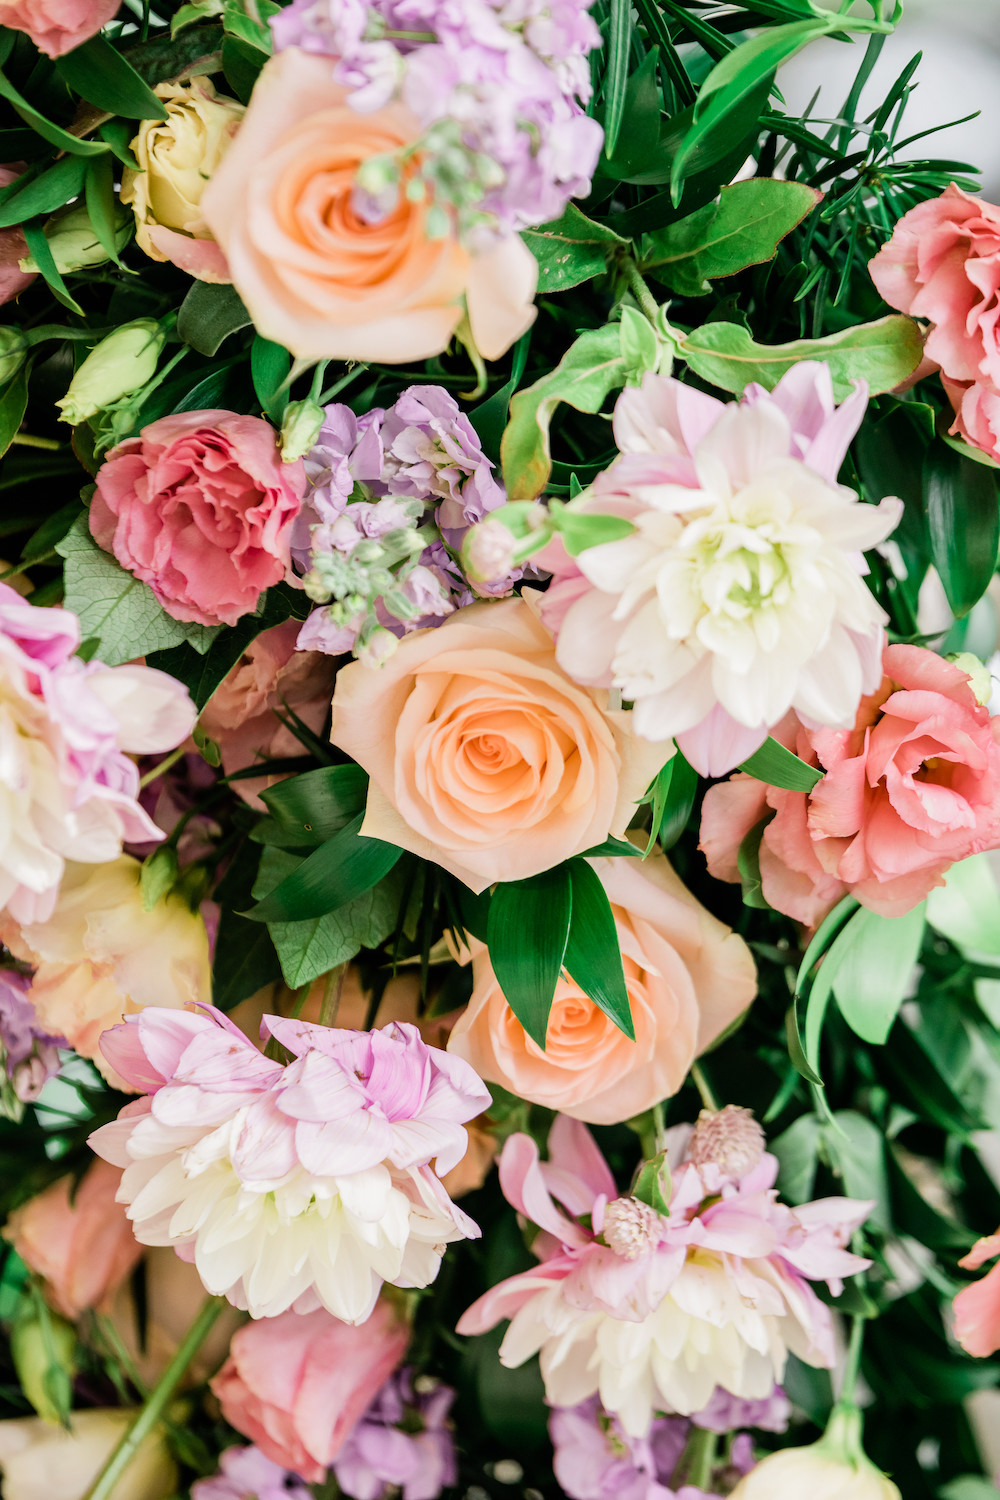 Peach and Lavender Wedding Flowers - Planning a Wedding in Winnipeg